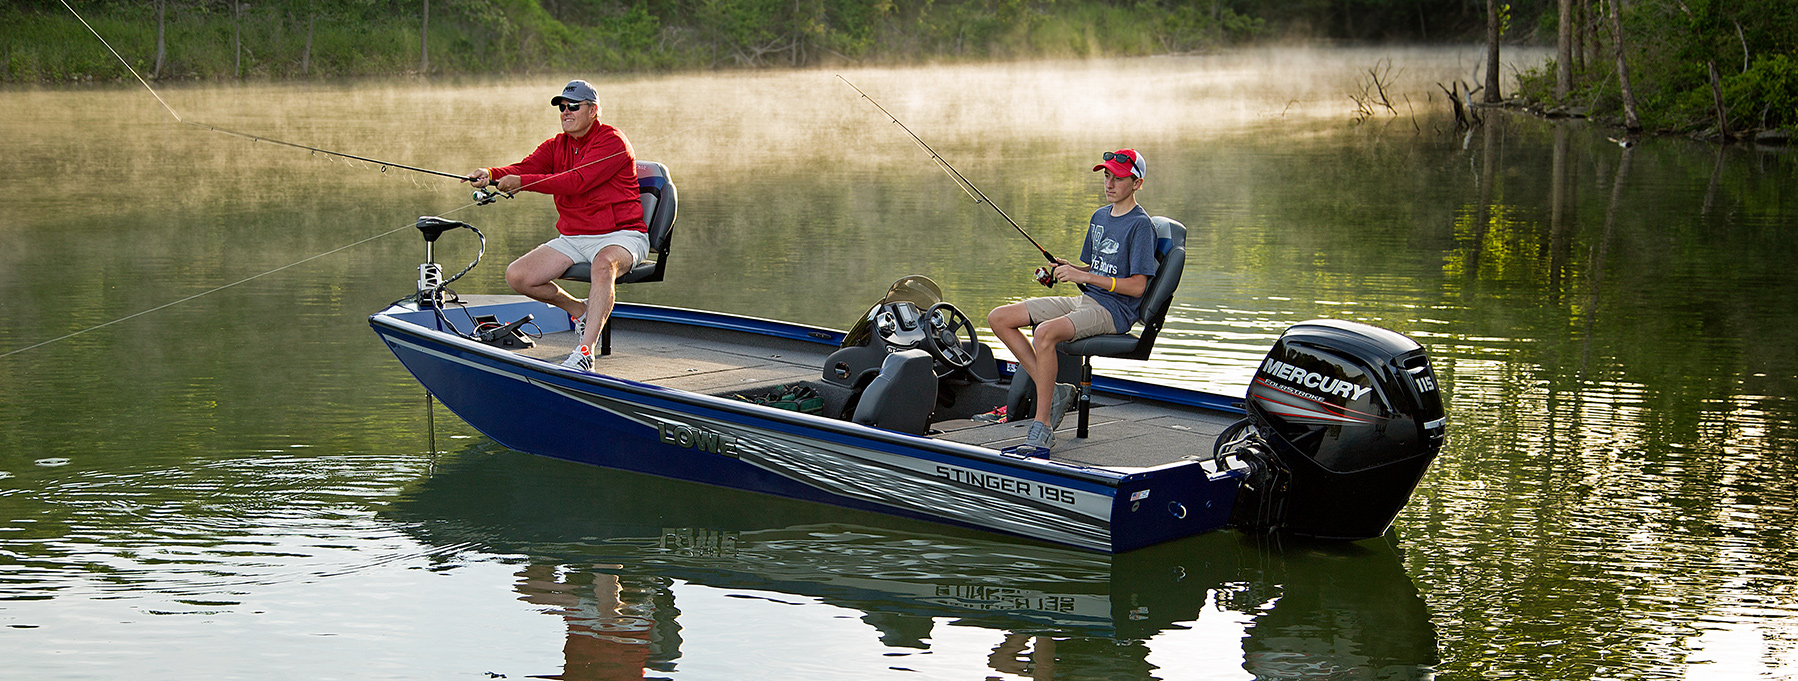 2017 stinger st195 aluminum bass crappie fishing boat for Crappie fishing boats